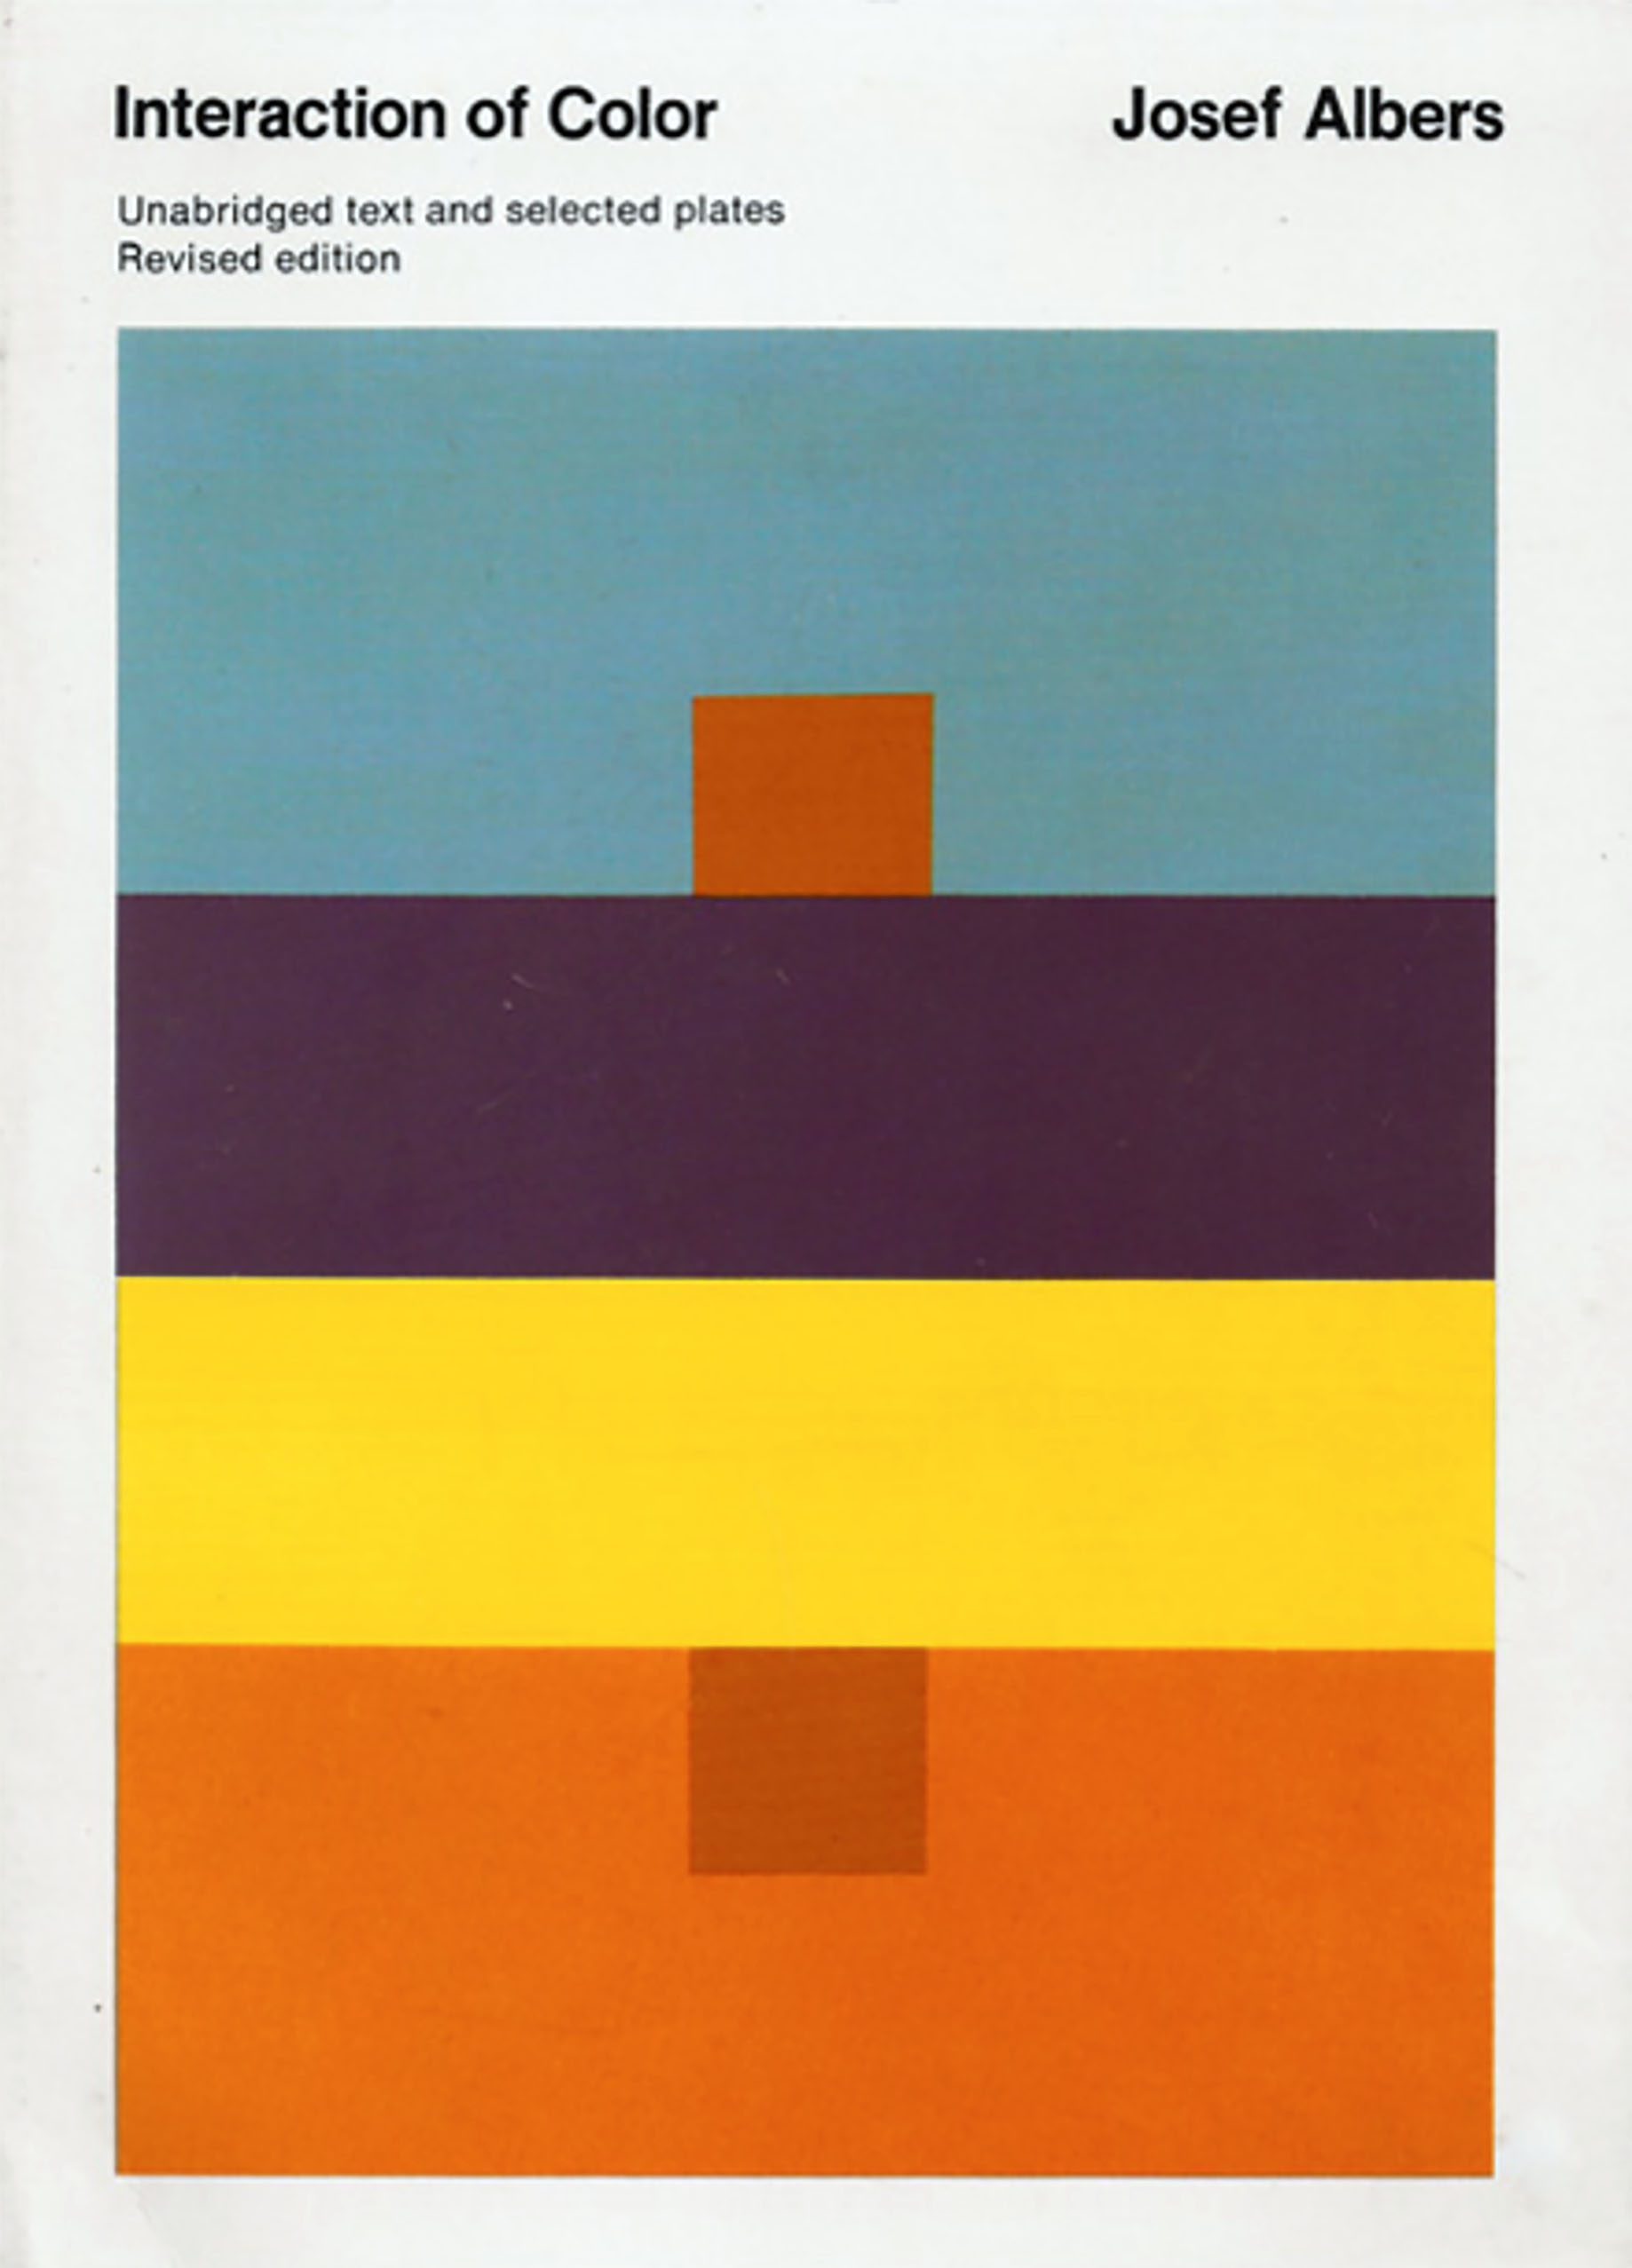 Josef Albers On The Interaction Of Color In Art And Design Education